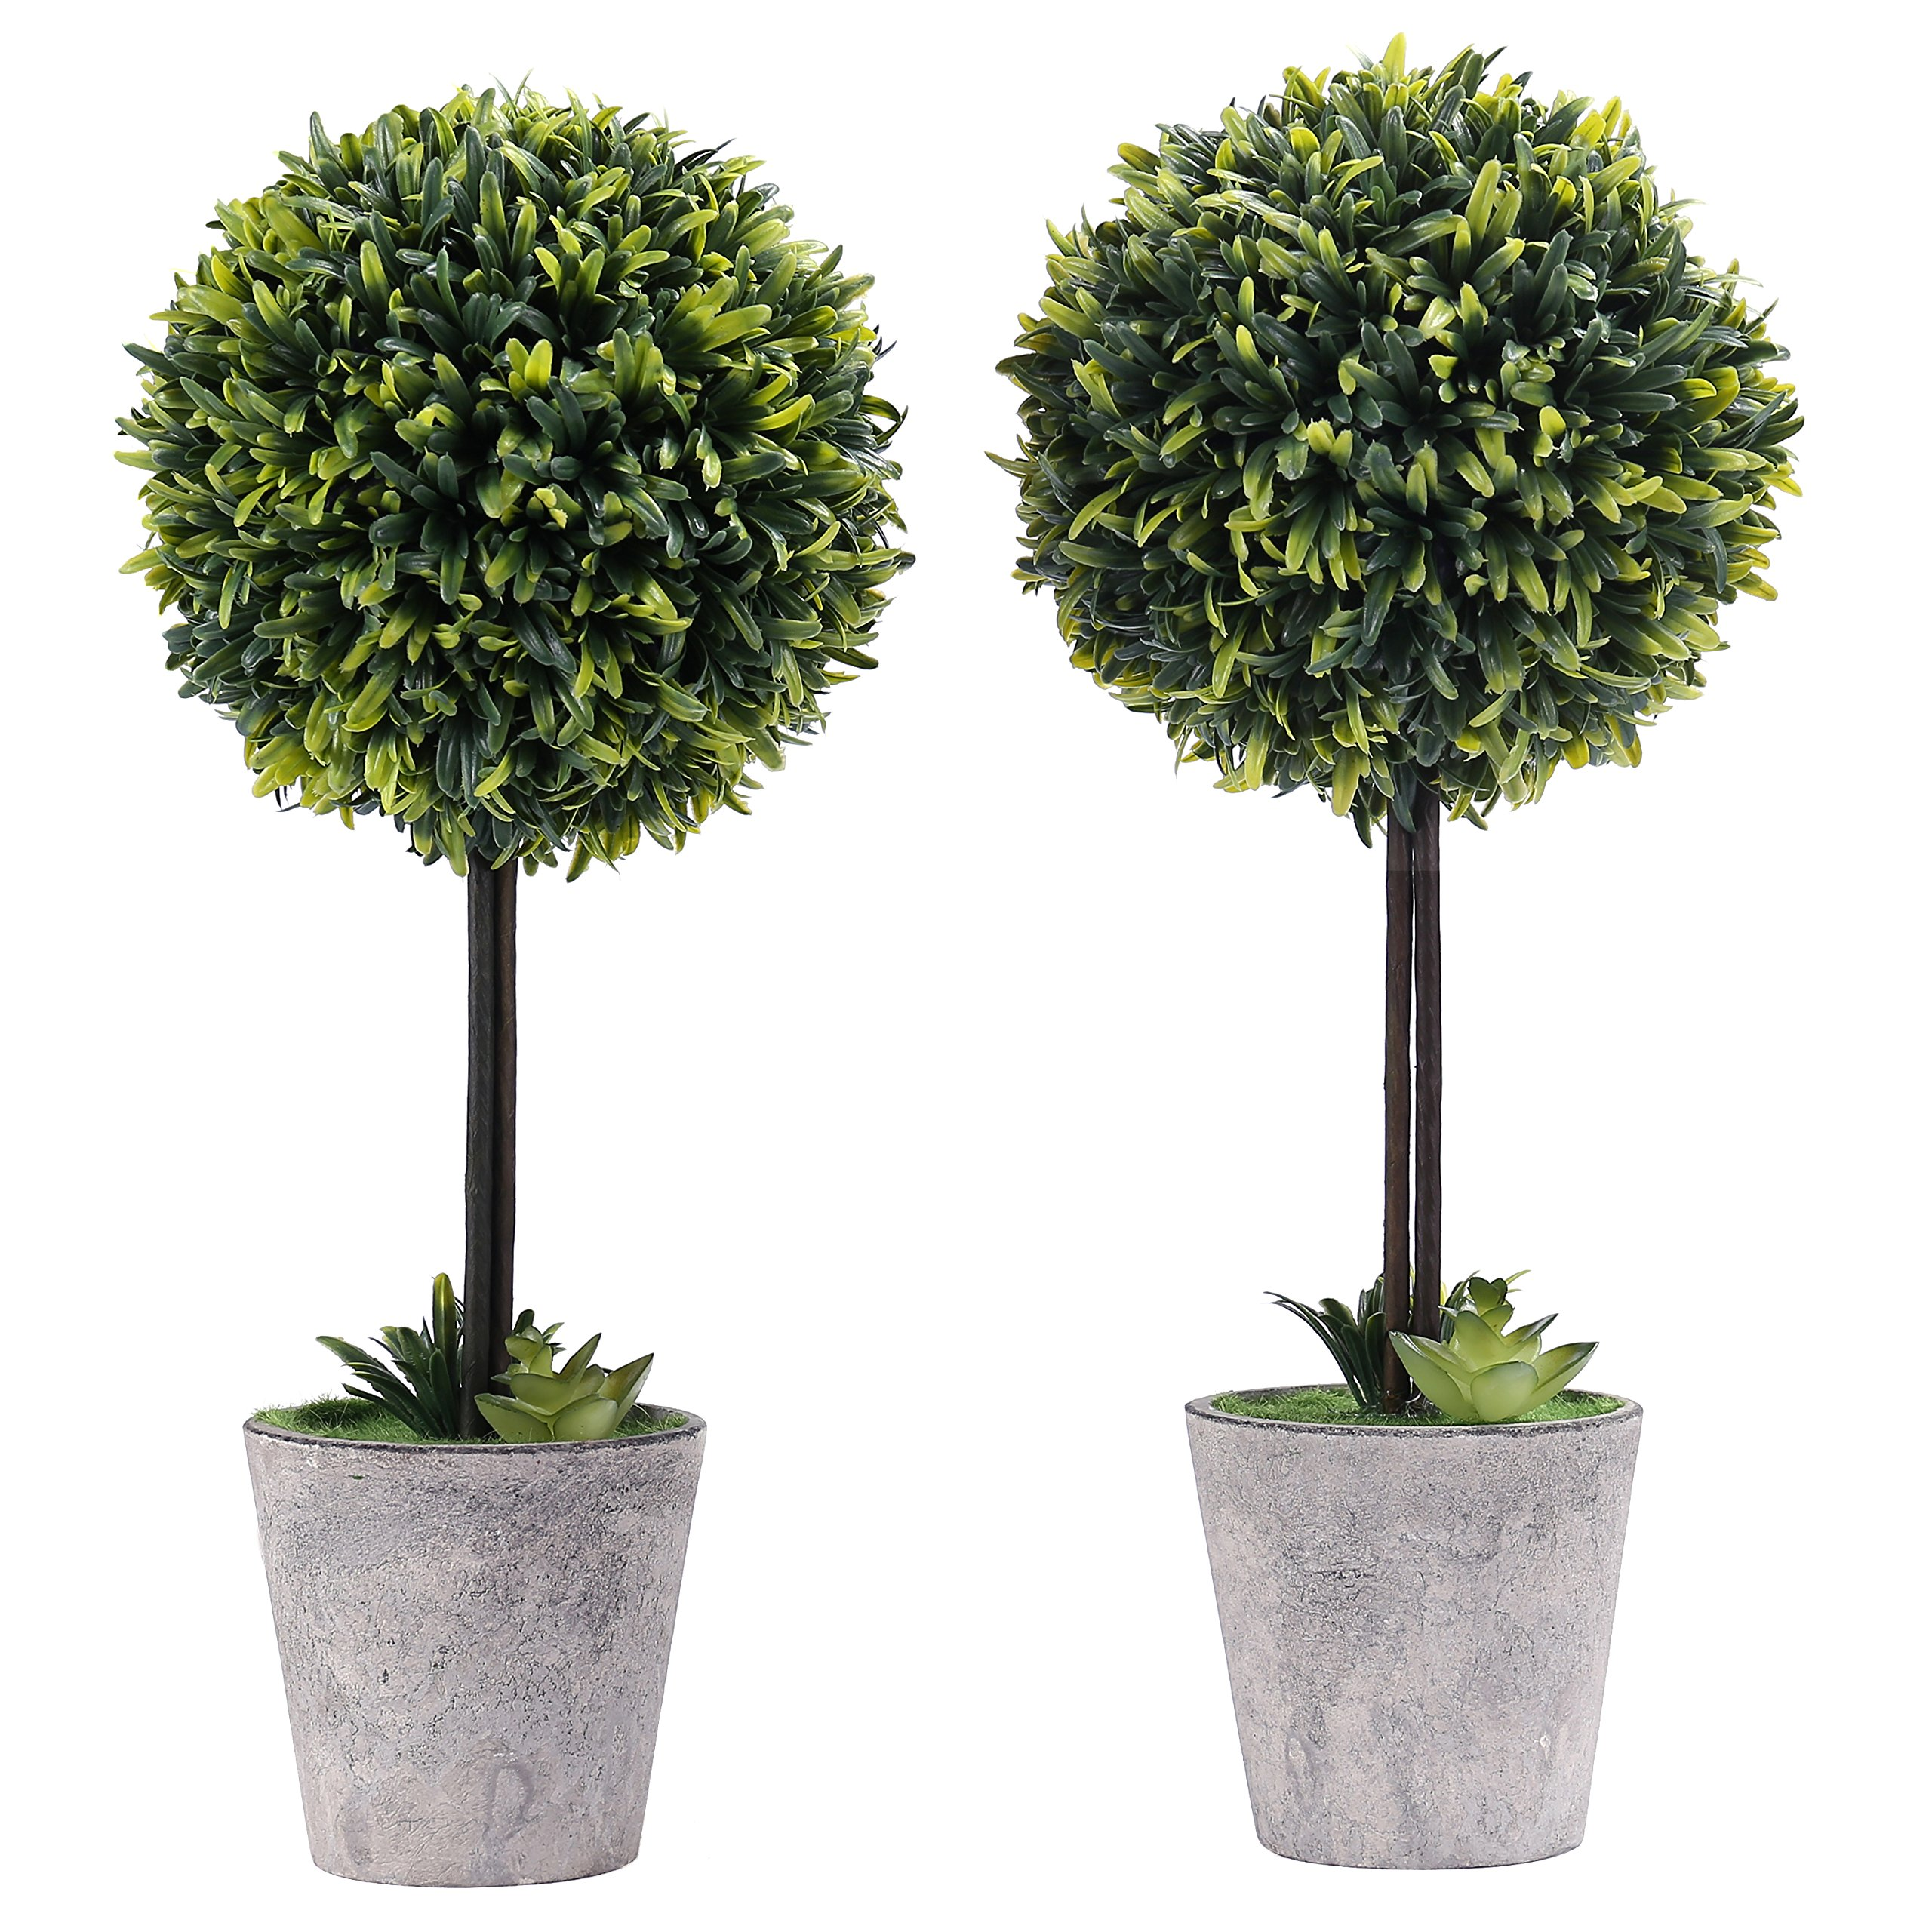 MyGift Artificial Boxwood Topiary Planter